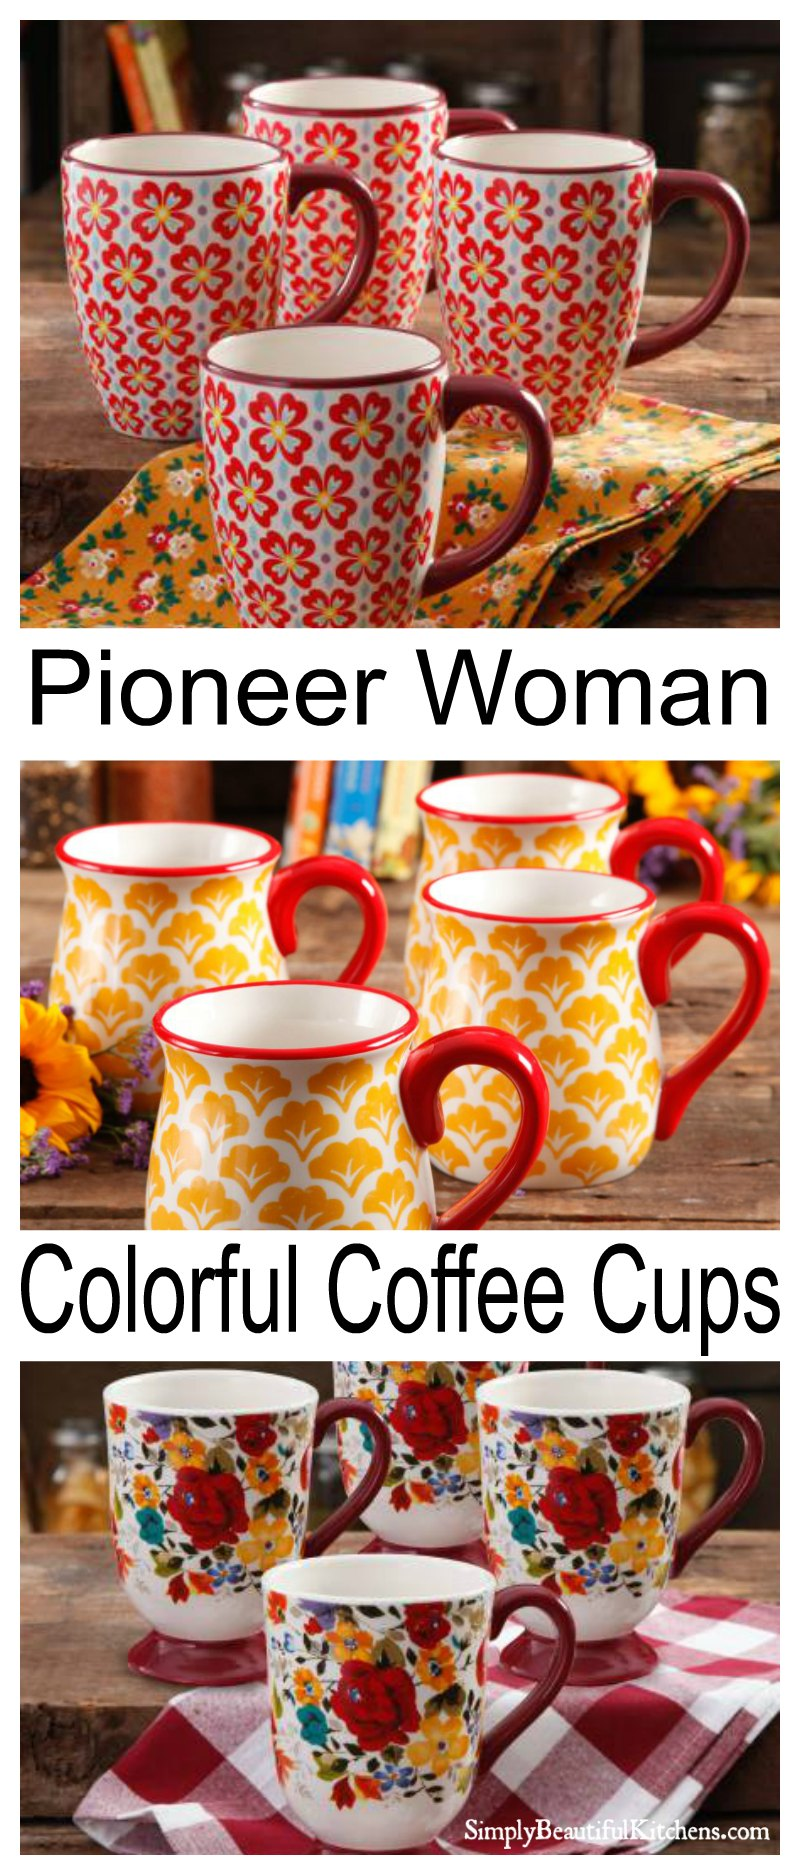 Pioneer Woman Coffee Cups are perfect for coffee, tea or any hot beverage. So pretty and yet so useful. What is your favorite color?